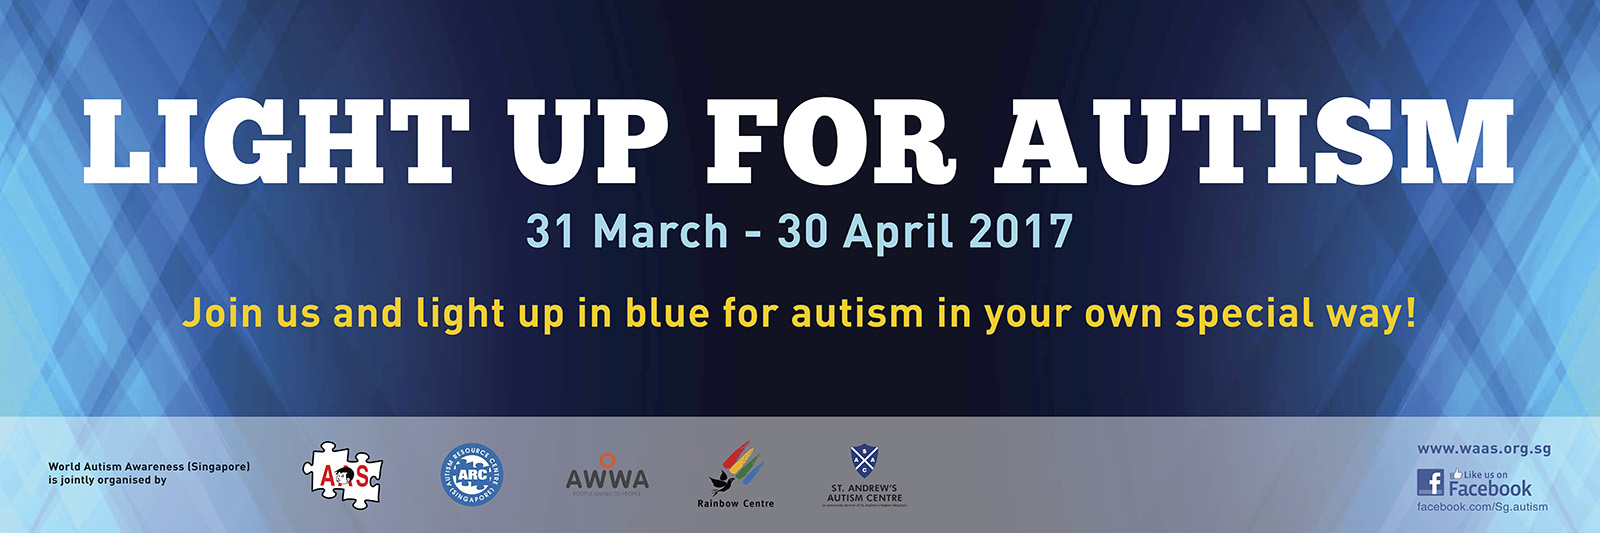 Light Up for Autism